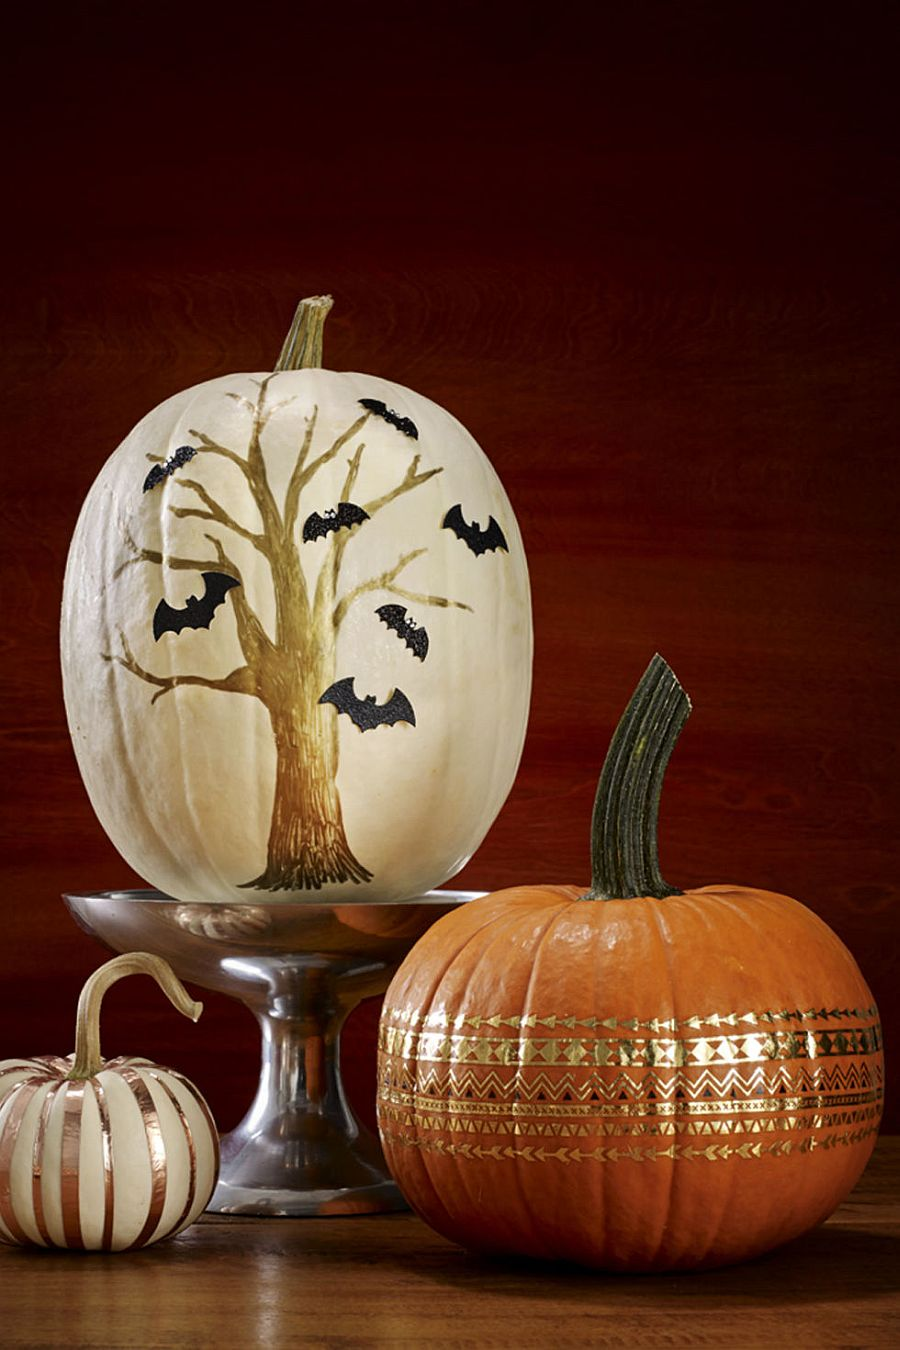 25 Awesome Painted Pumpkin Ideas For Halloween And Beyond: white pumpkin carving ideas